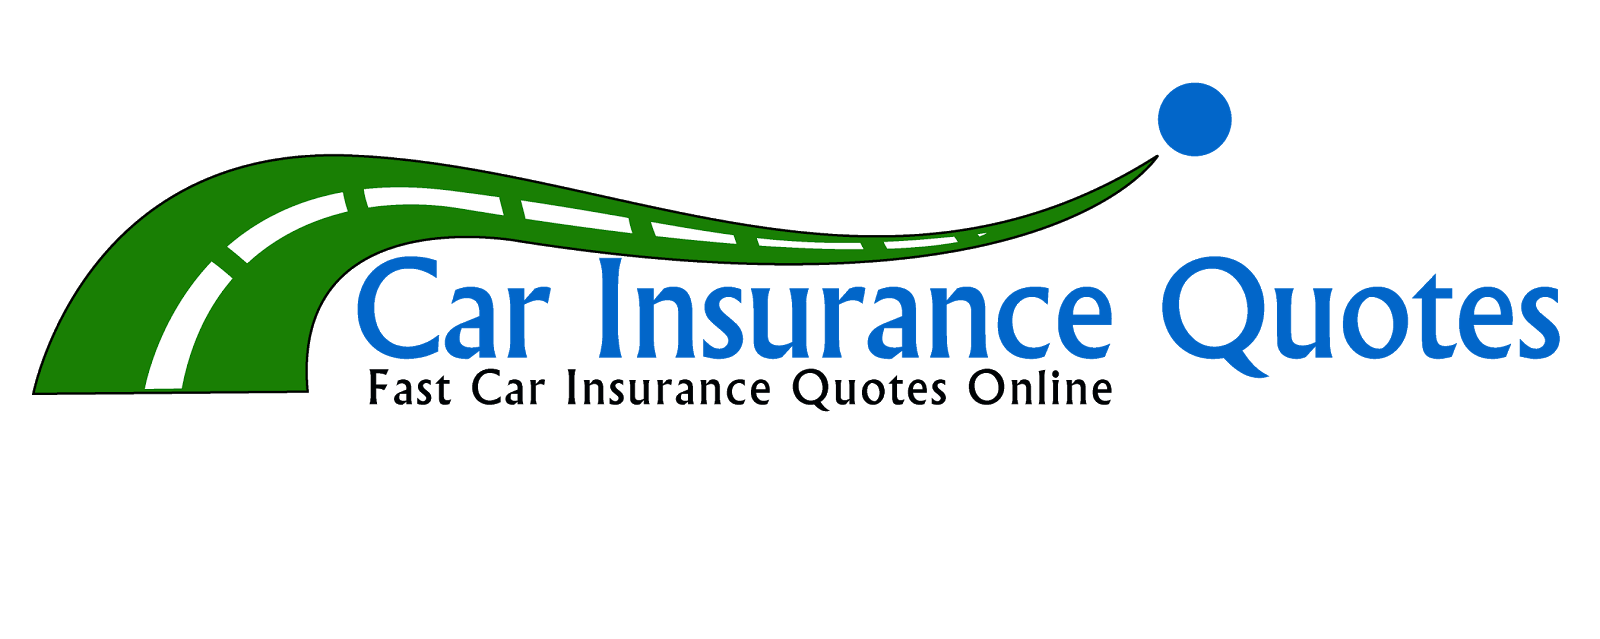 Car Insurance Quotes Free Car Insurance Quotes Online  Places To Visit  Pinterest .